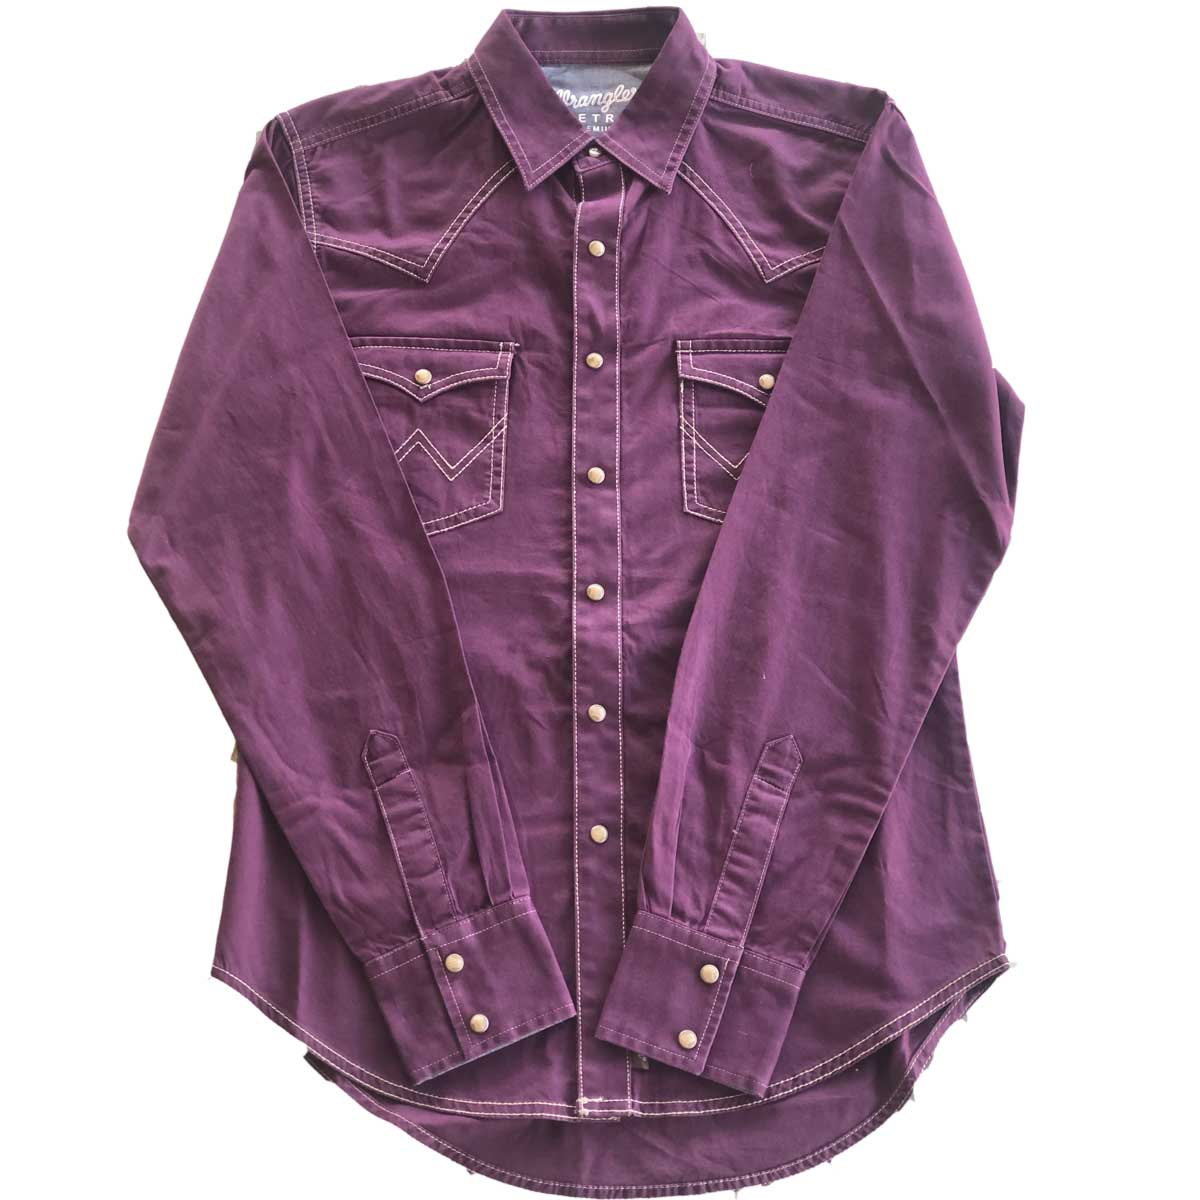 Wrangler Men's Pearl Snap Long Sleeve Western Shirt - Plum Purple